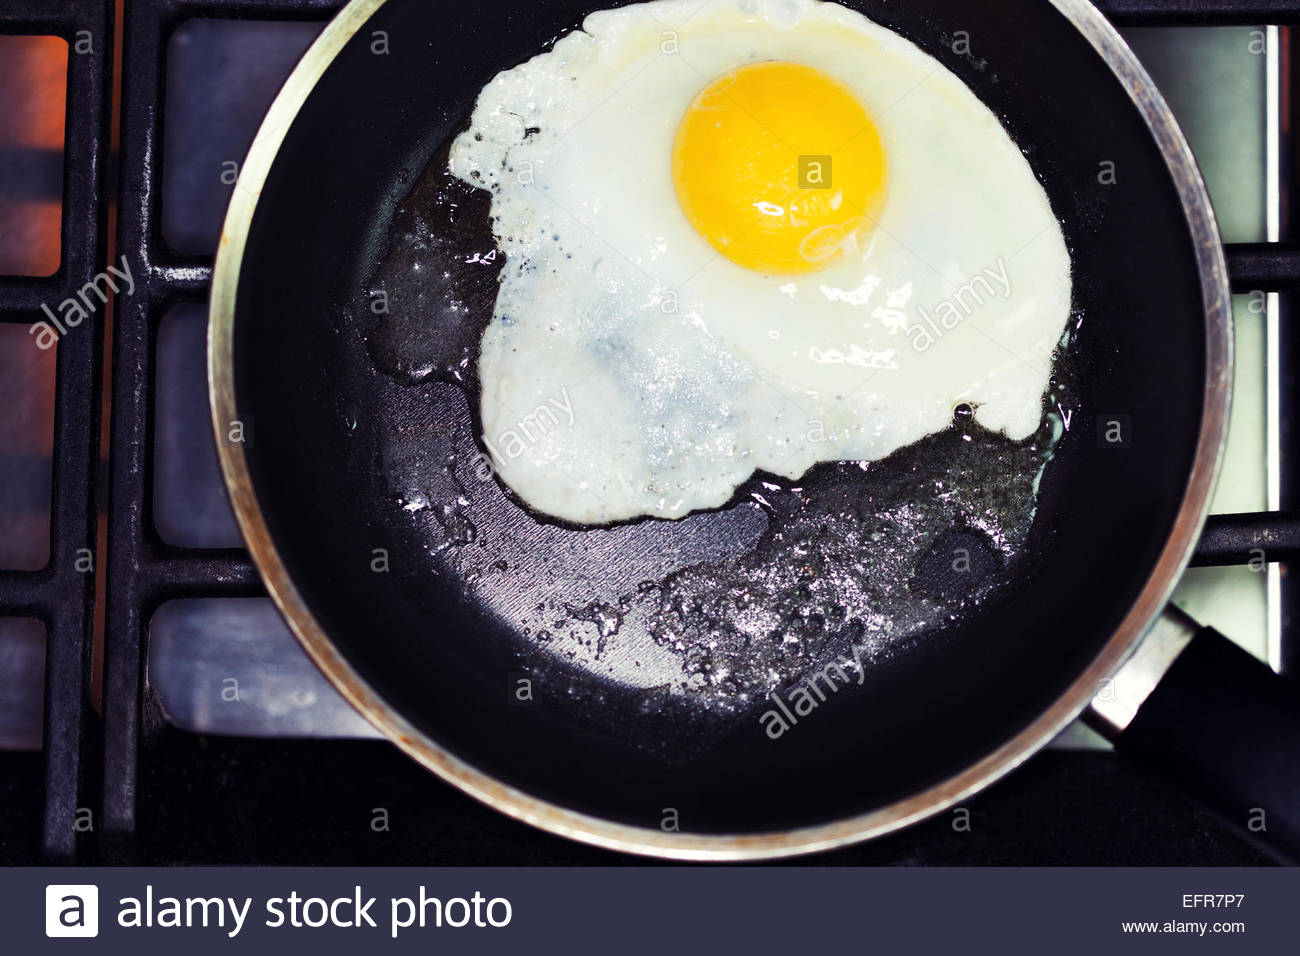 Overhead view of fried egg in frying pan - Stock Image